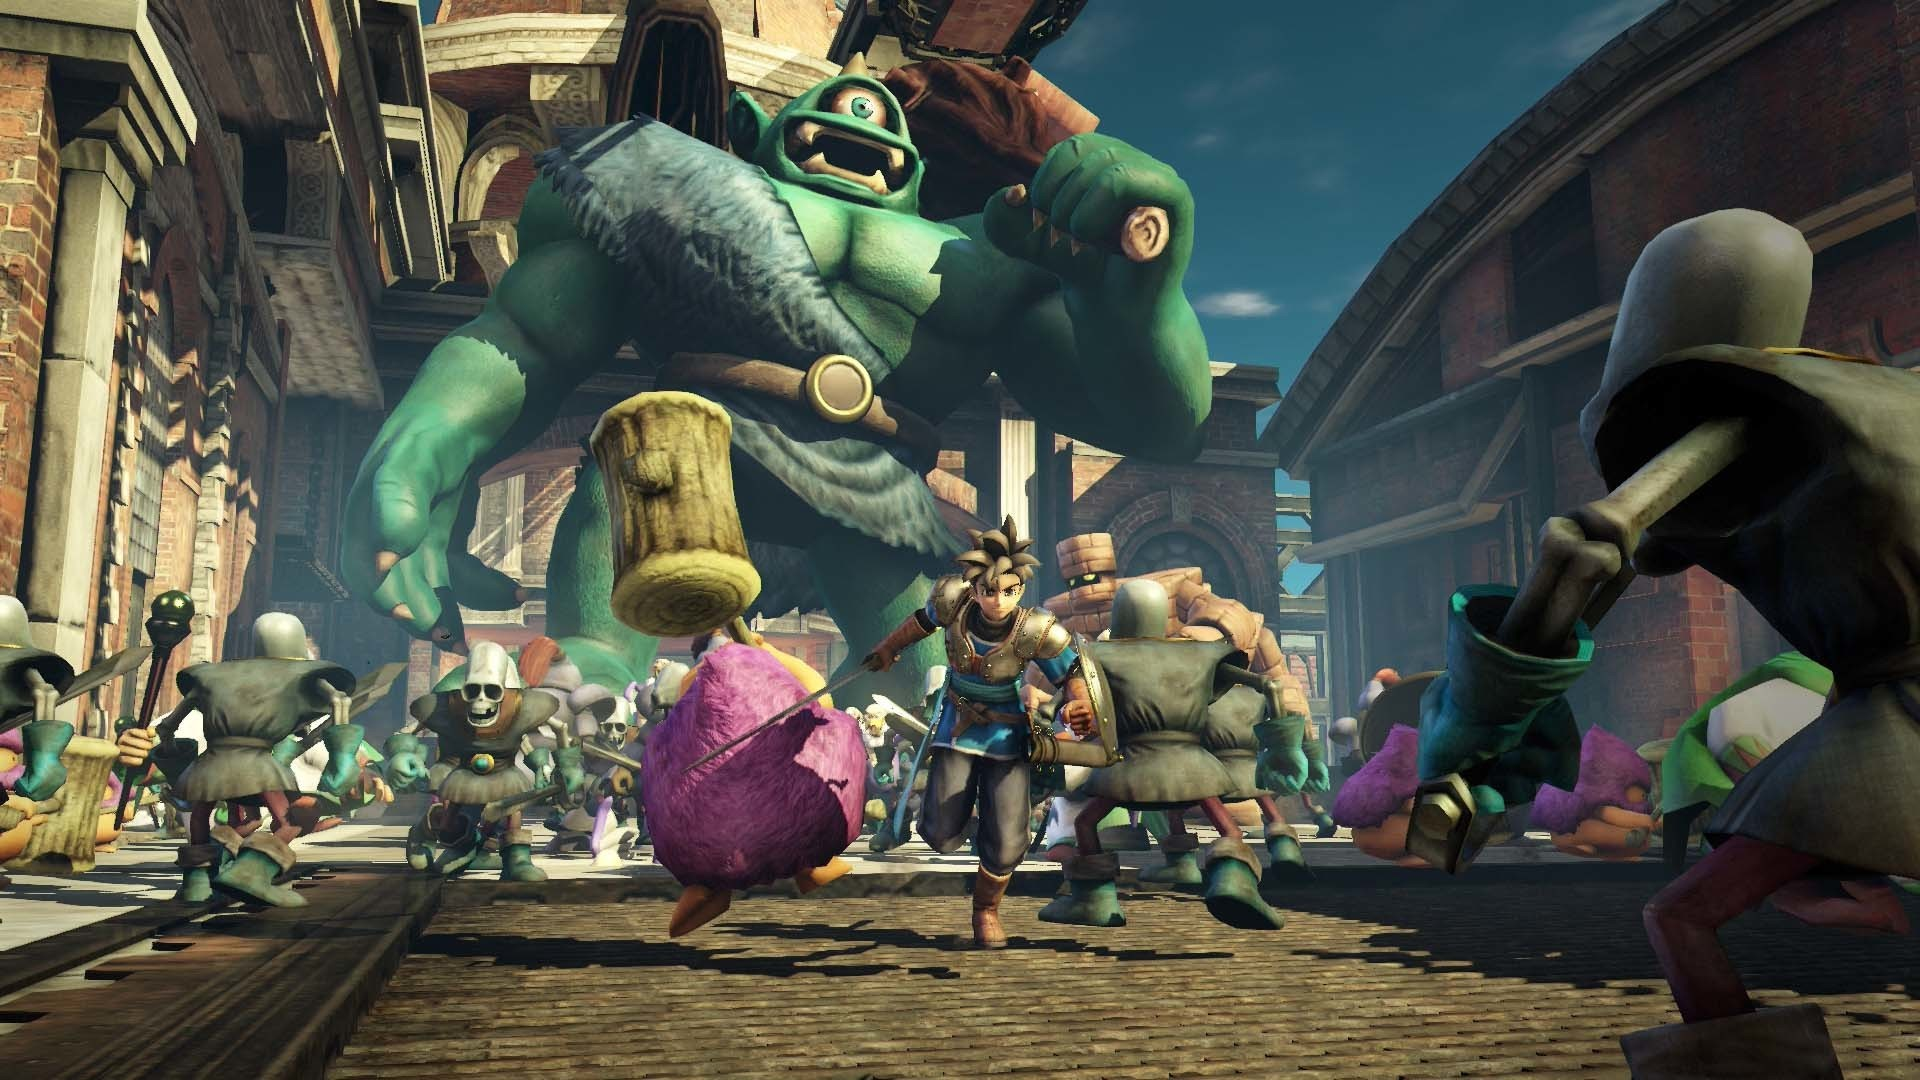 Dragon Quest Heroes Hd Wallpapers Dragon Quest Heroes The World